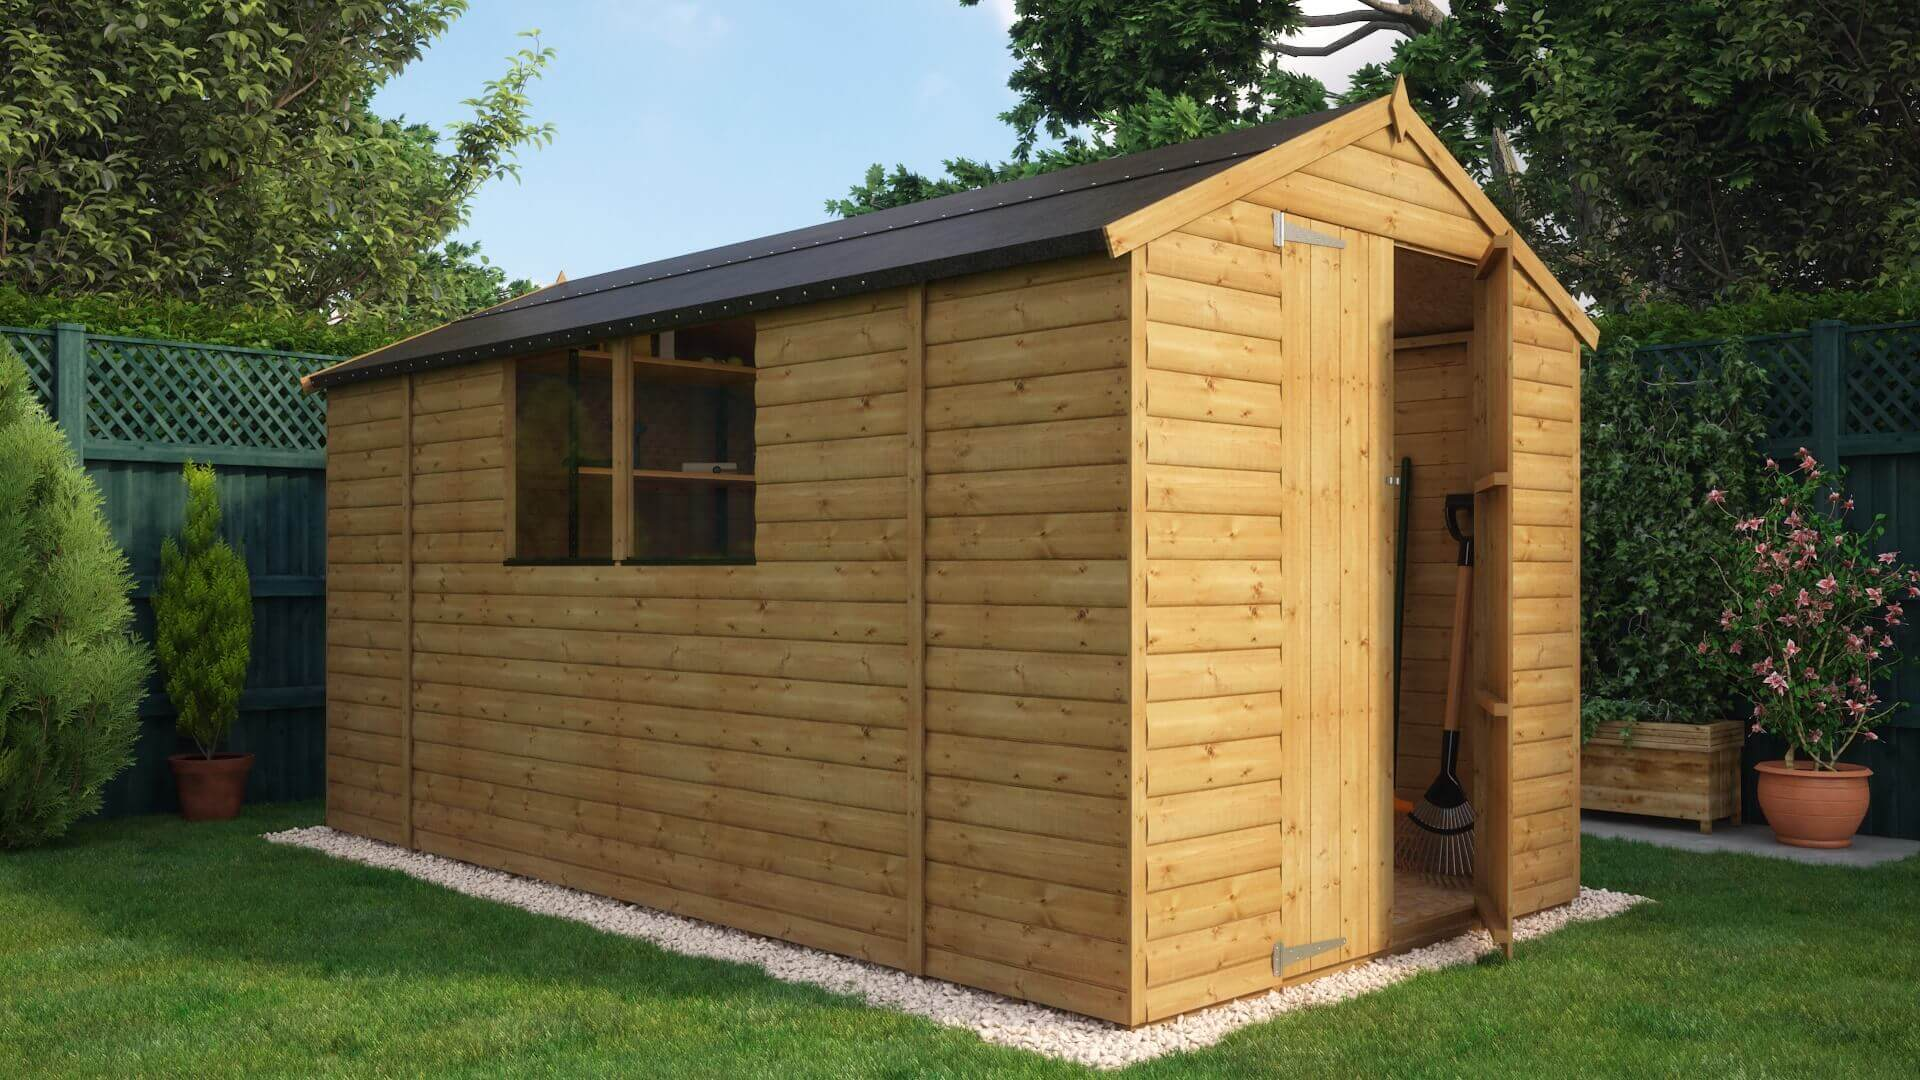 Ft X Ft Loglap Windowed Garden Shed Archives Project Timber - Difference between log lap sheds and ship lap sheds